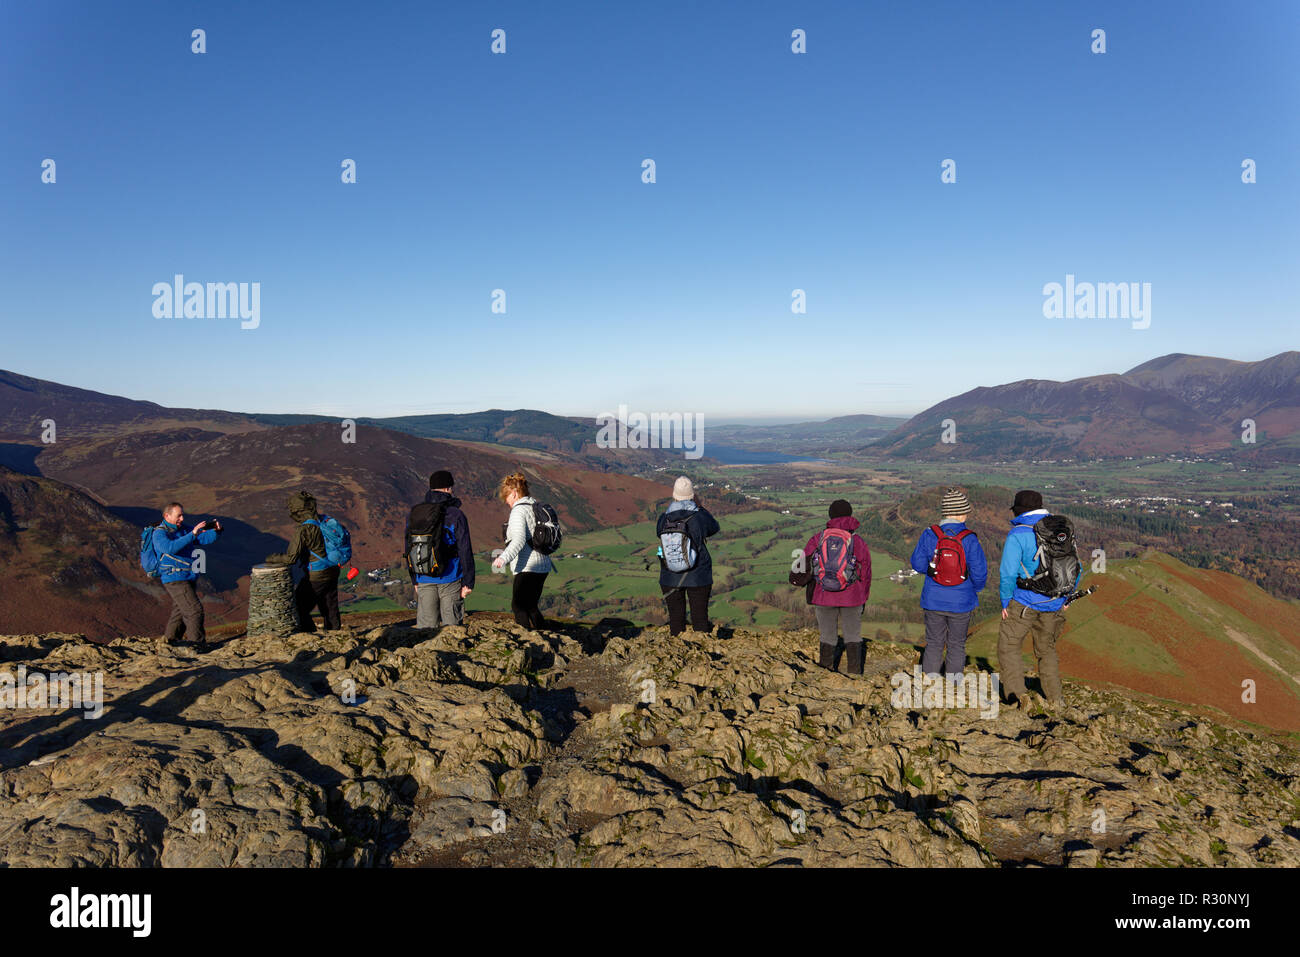 Fell walkers enjoying the wonderful view from the top of Catbells a small mountain near Keswick in the Lake District National Park - Stock Image